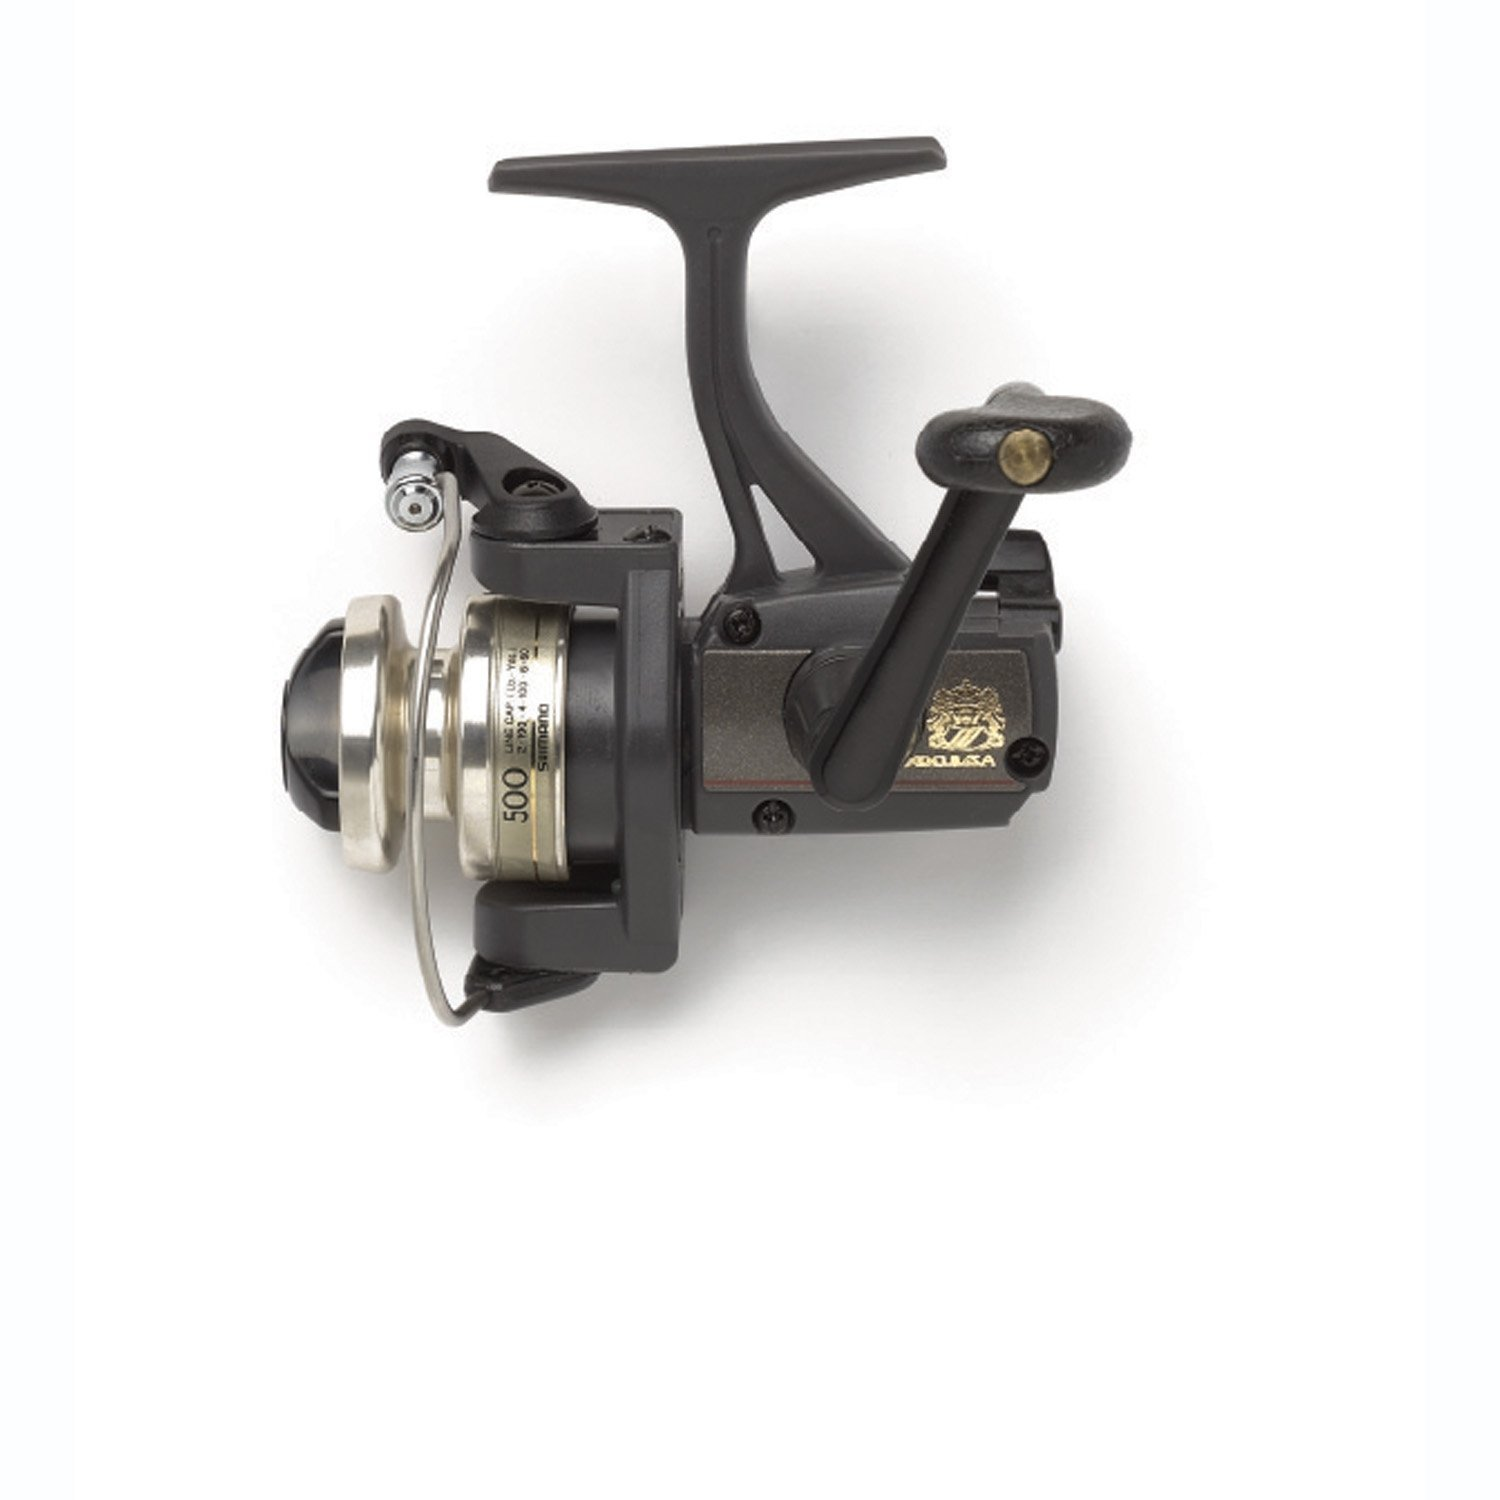 Shimano ax ulsa spinning reel mini ultralight trout 4 2 1 for Ebay fishing reels shimano